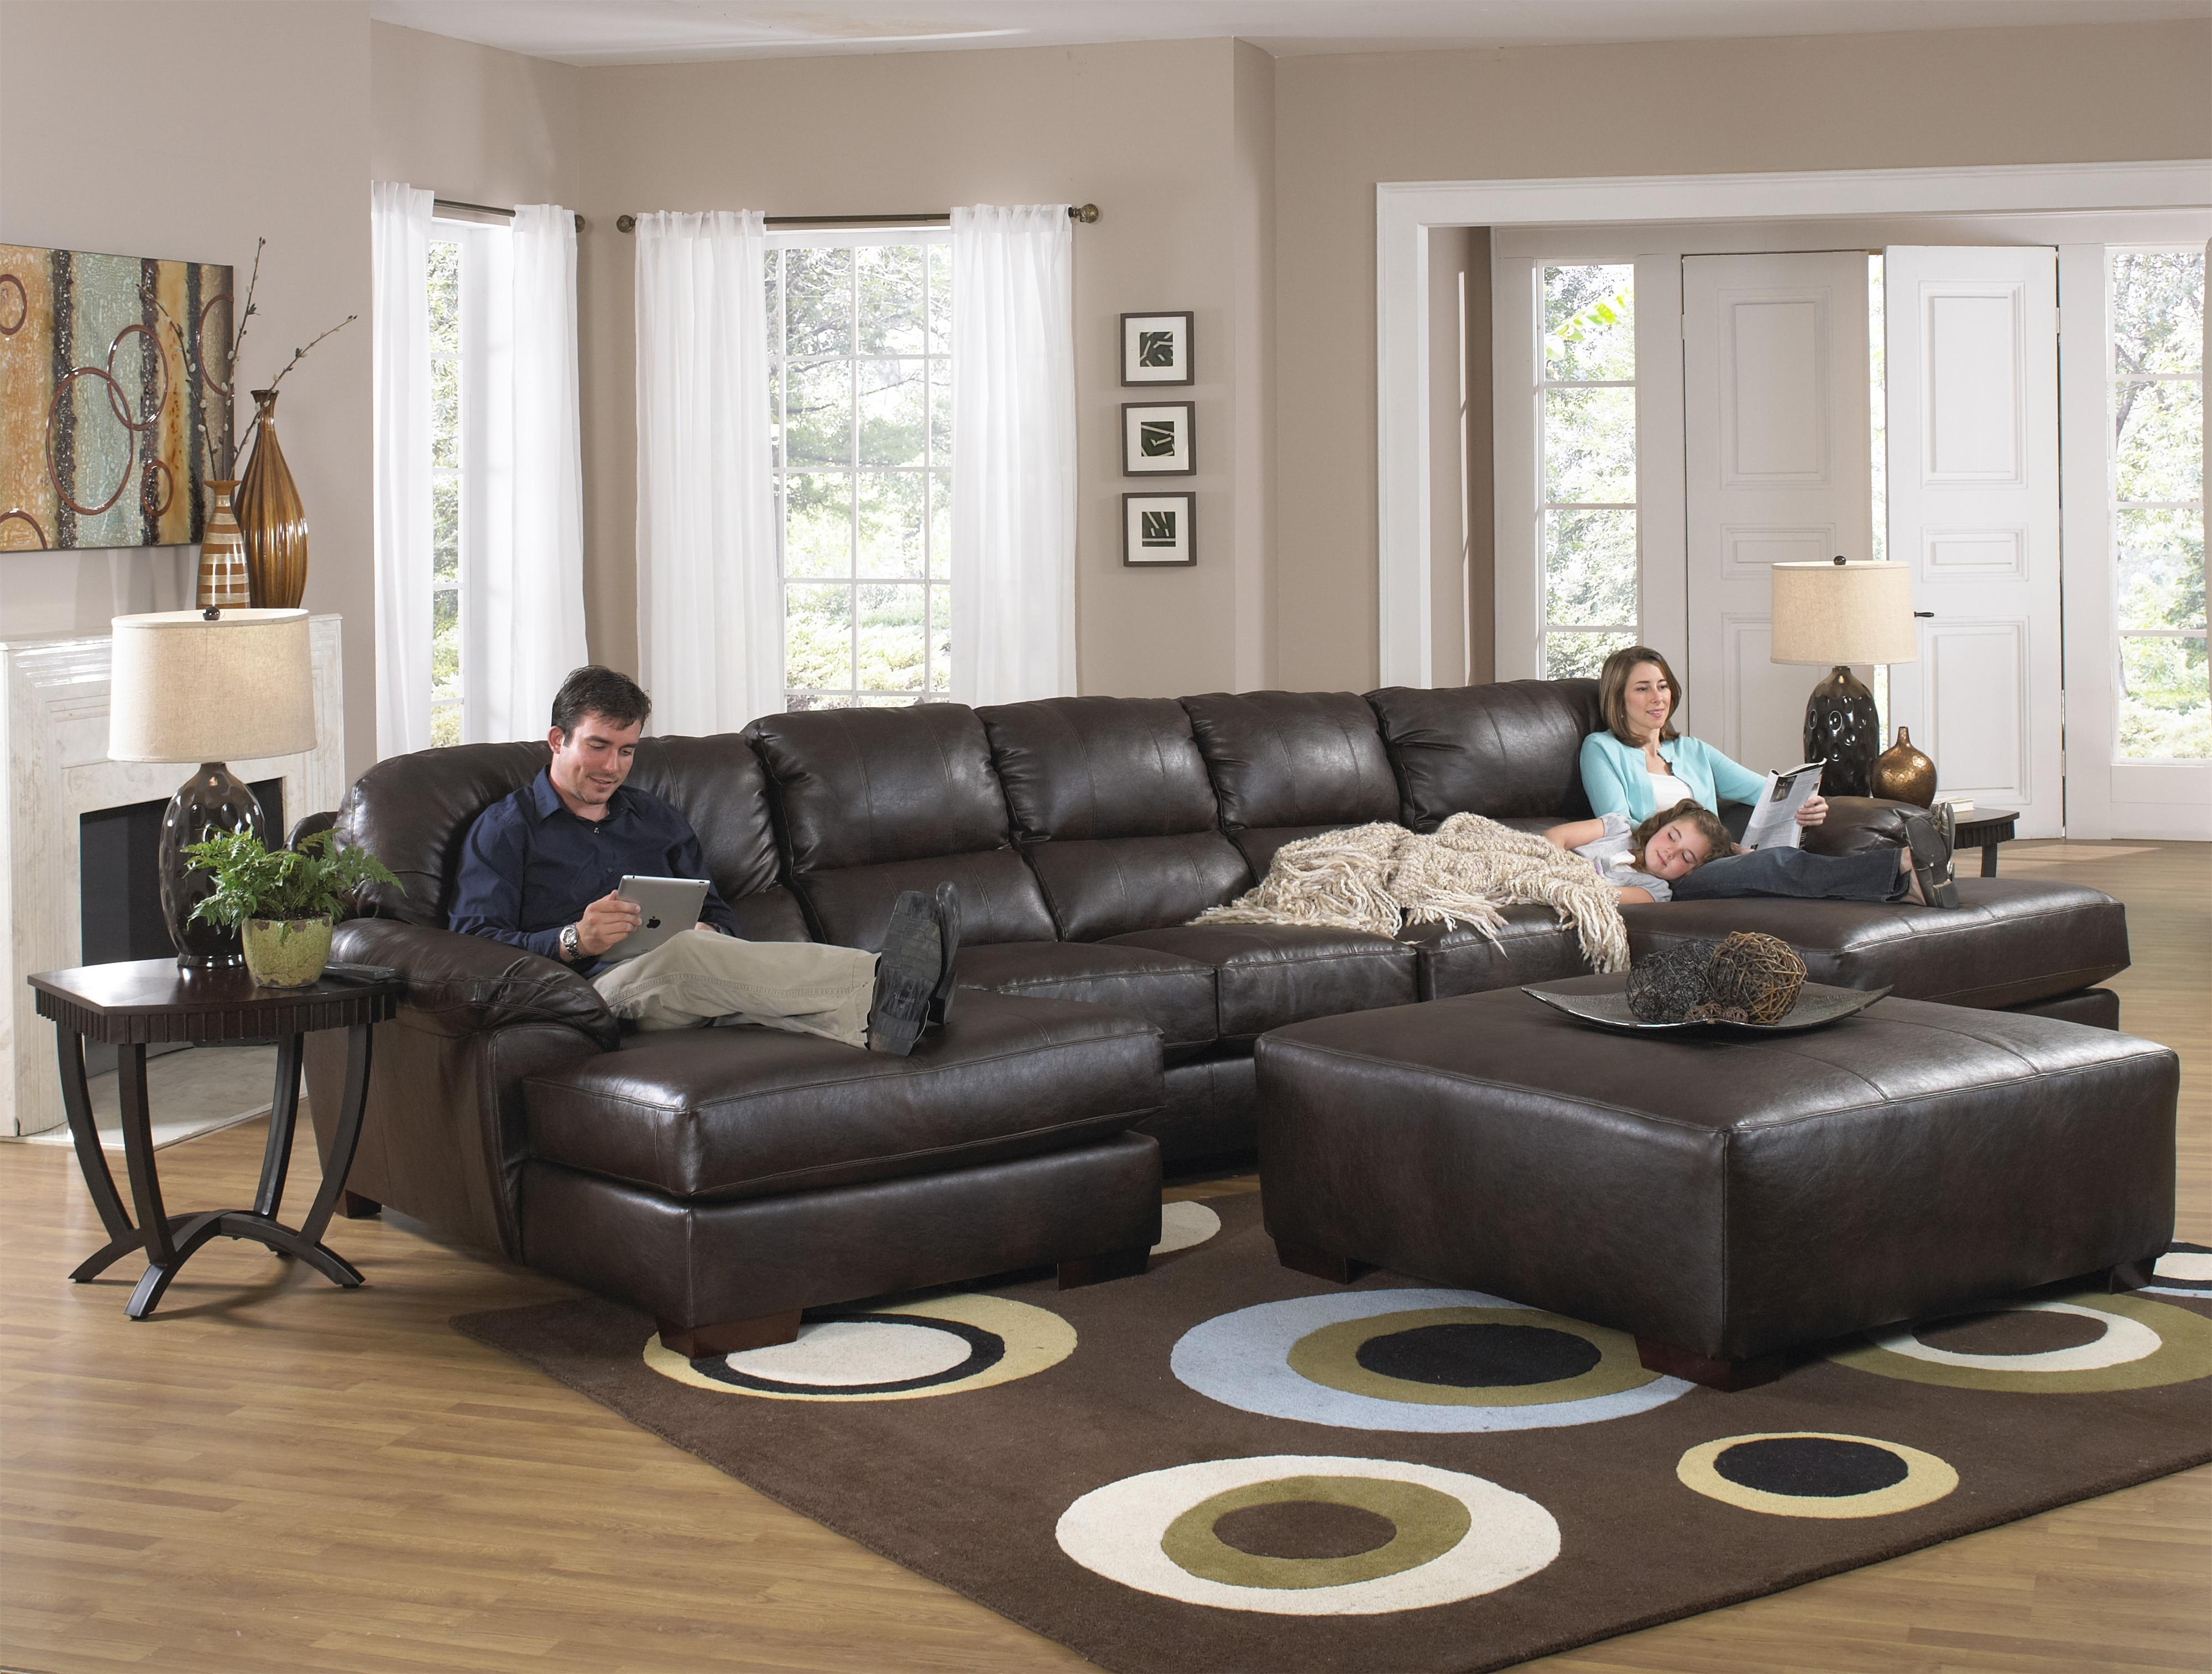 Popular Ethan Allen Sectional Sofas Double Chaise Sectional U Shaped Within Leather Sectionals With Chaise Lounge (View 11 of 15)